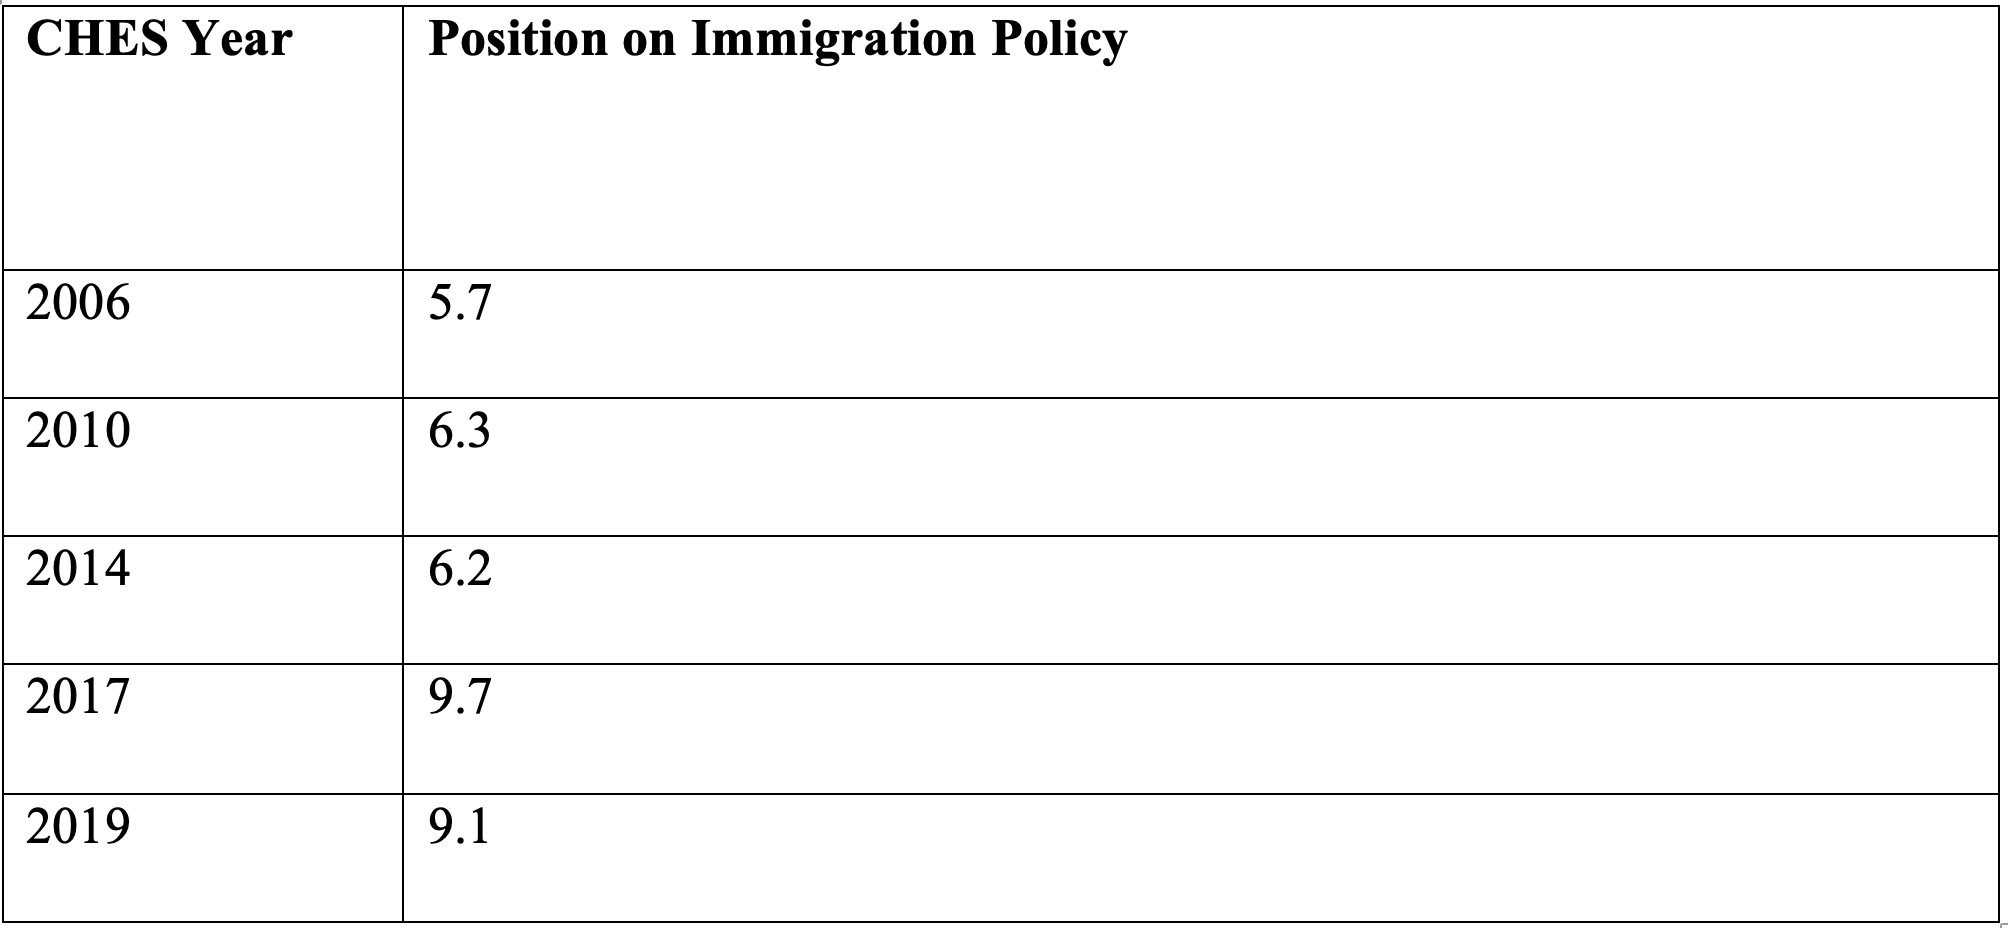 Table 1. The Position of the PiS Party on Immigration Policy